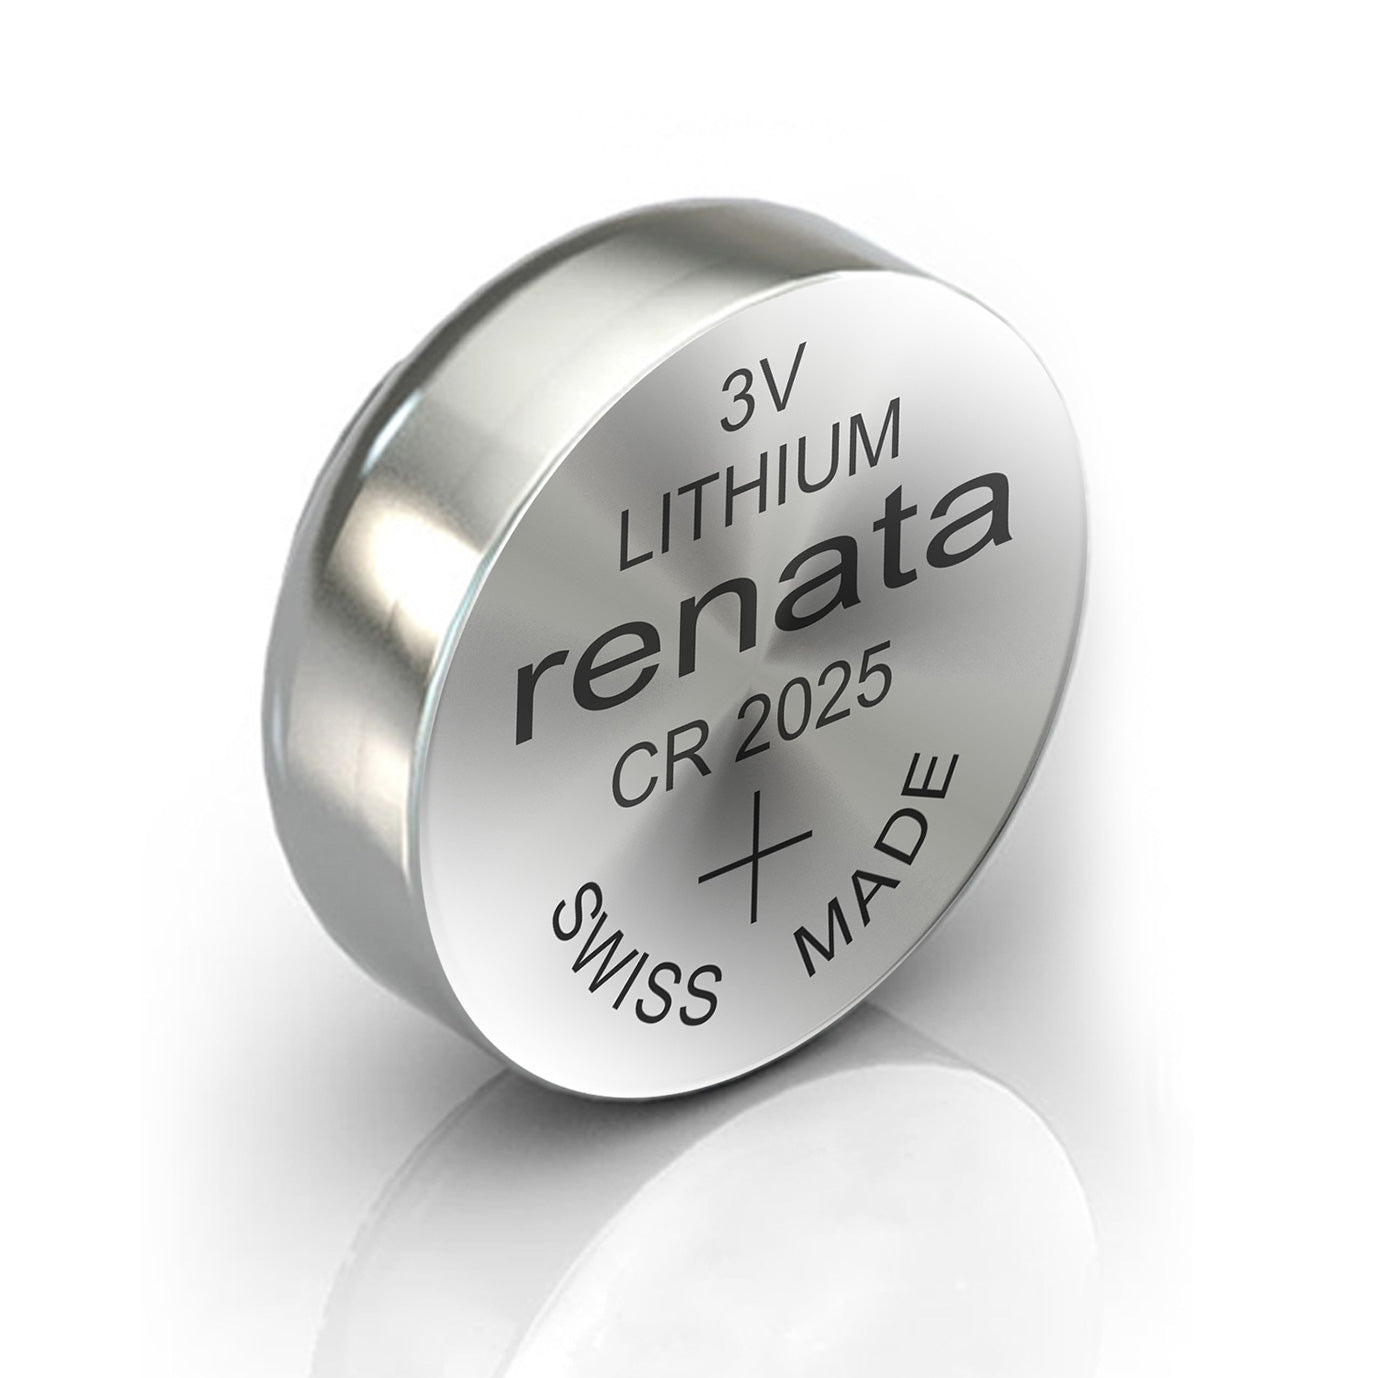 2x Renata CR2025 Watch Battery Swiss Made Lithium 3V Silver Oxide by  TradeNRG